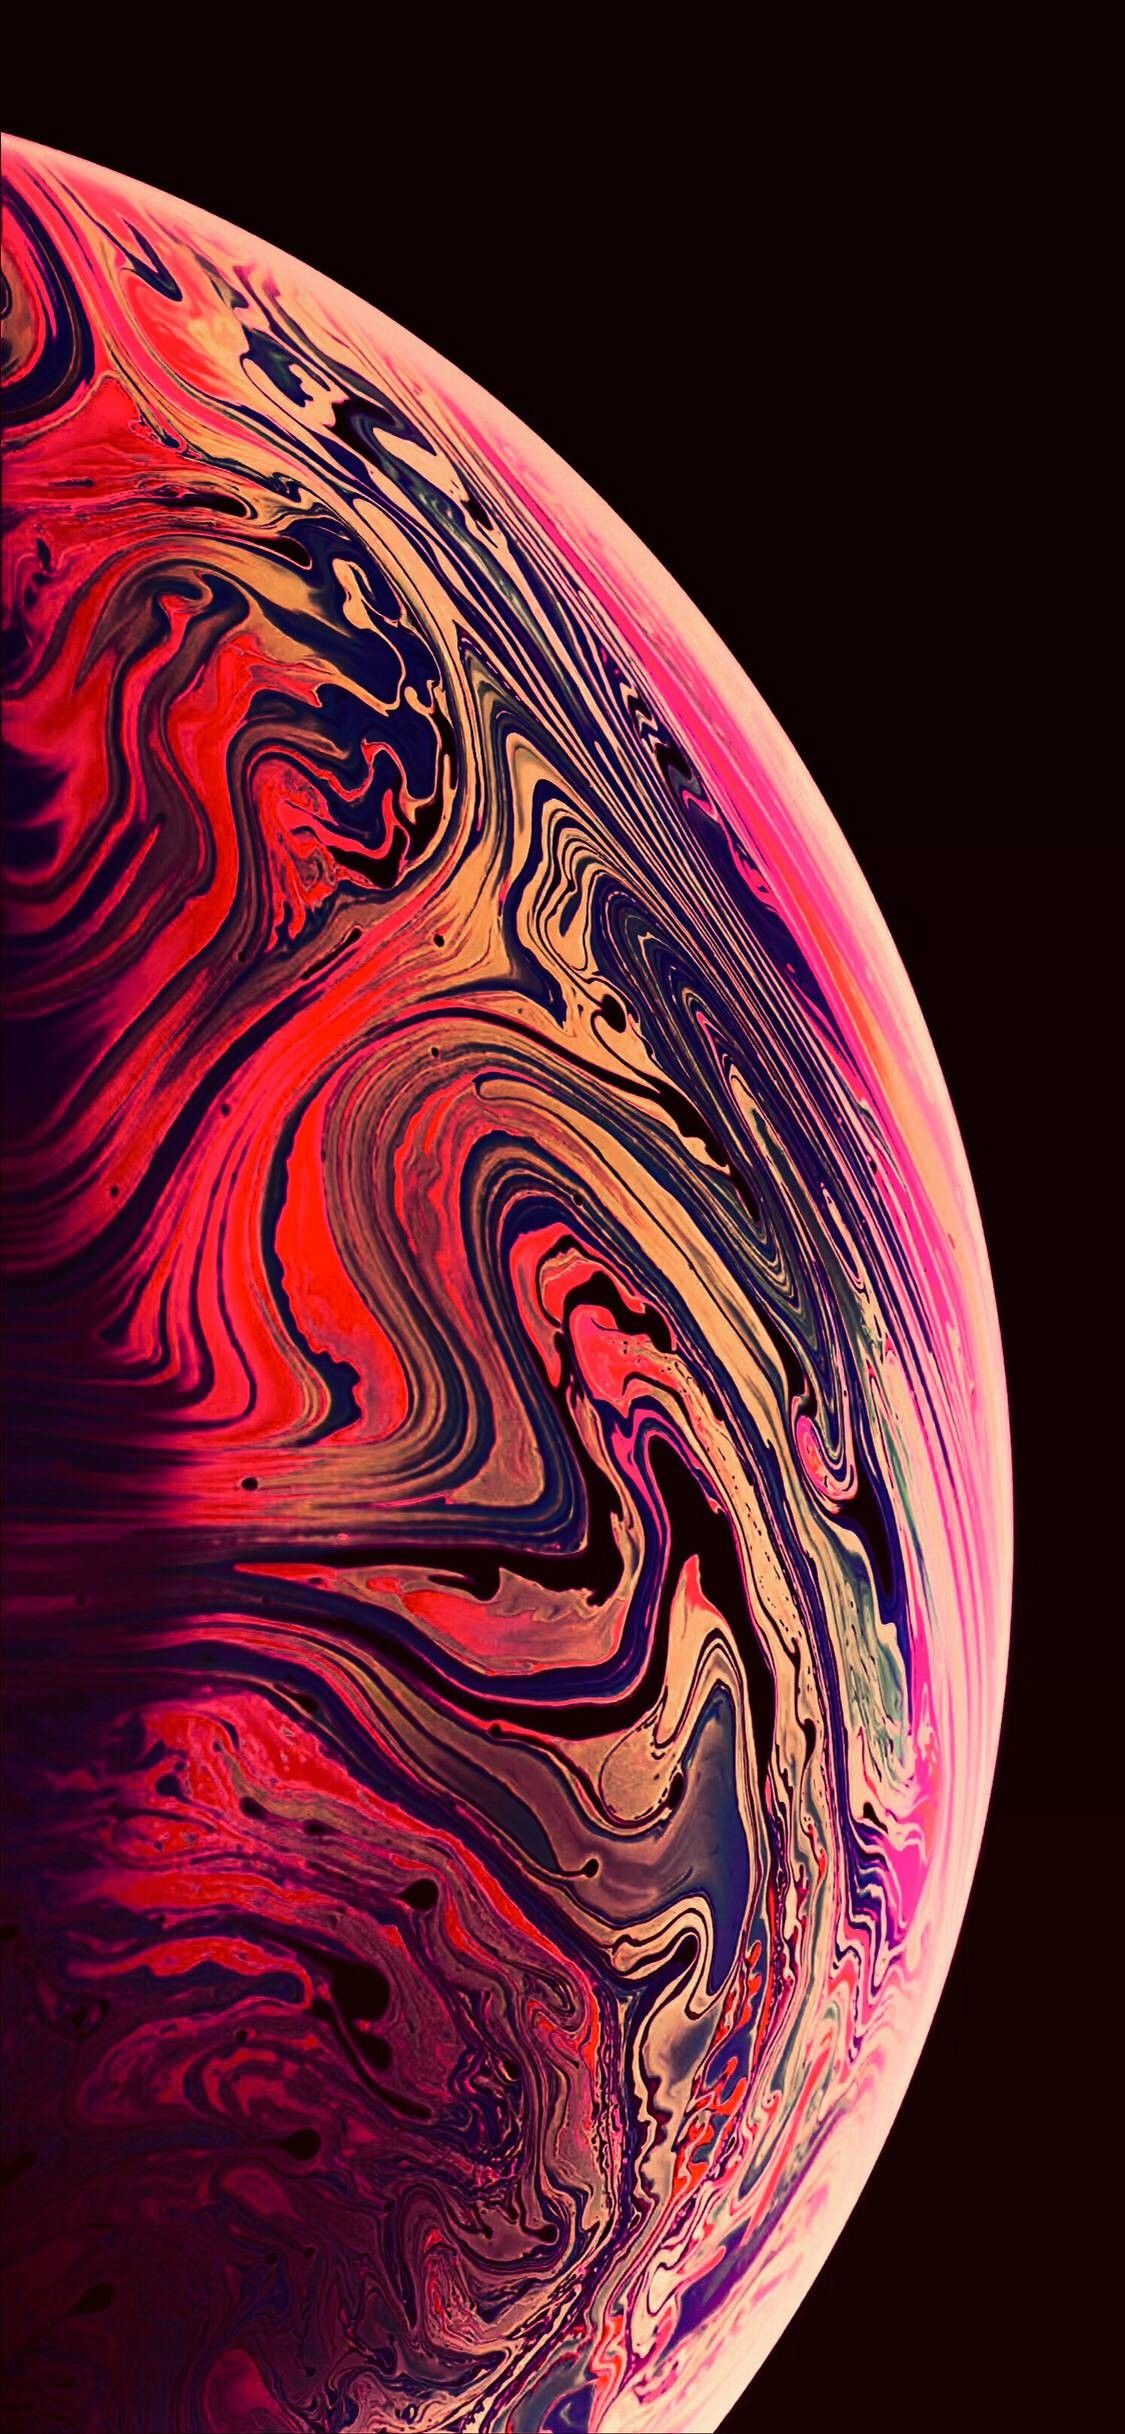 Pin by Andre Bundle on AMOLED Wallpapers (Space) | Apple ...